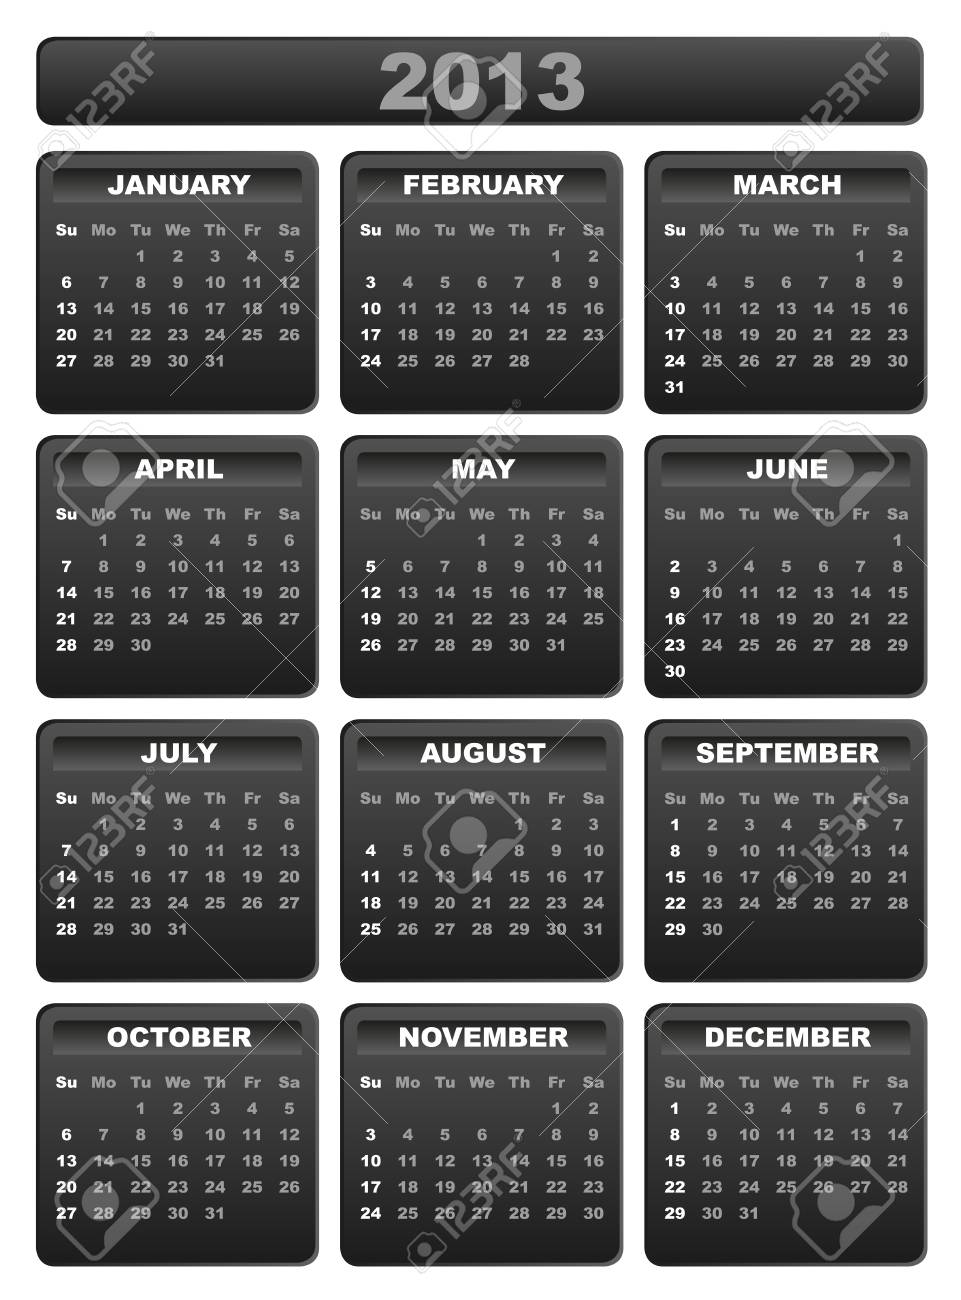 2013 Calendar in Shades of Grey on White Background Stock Vector - 15398755